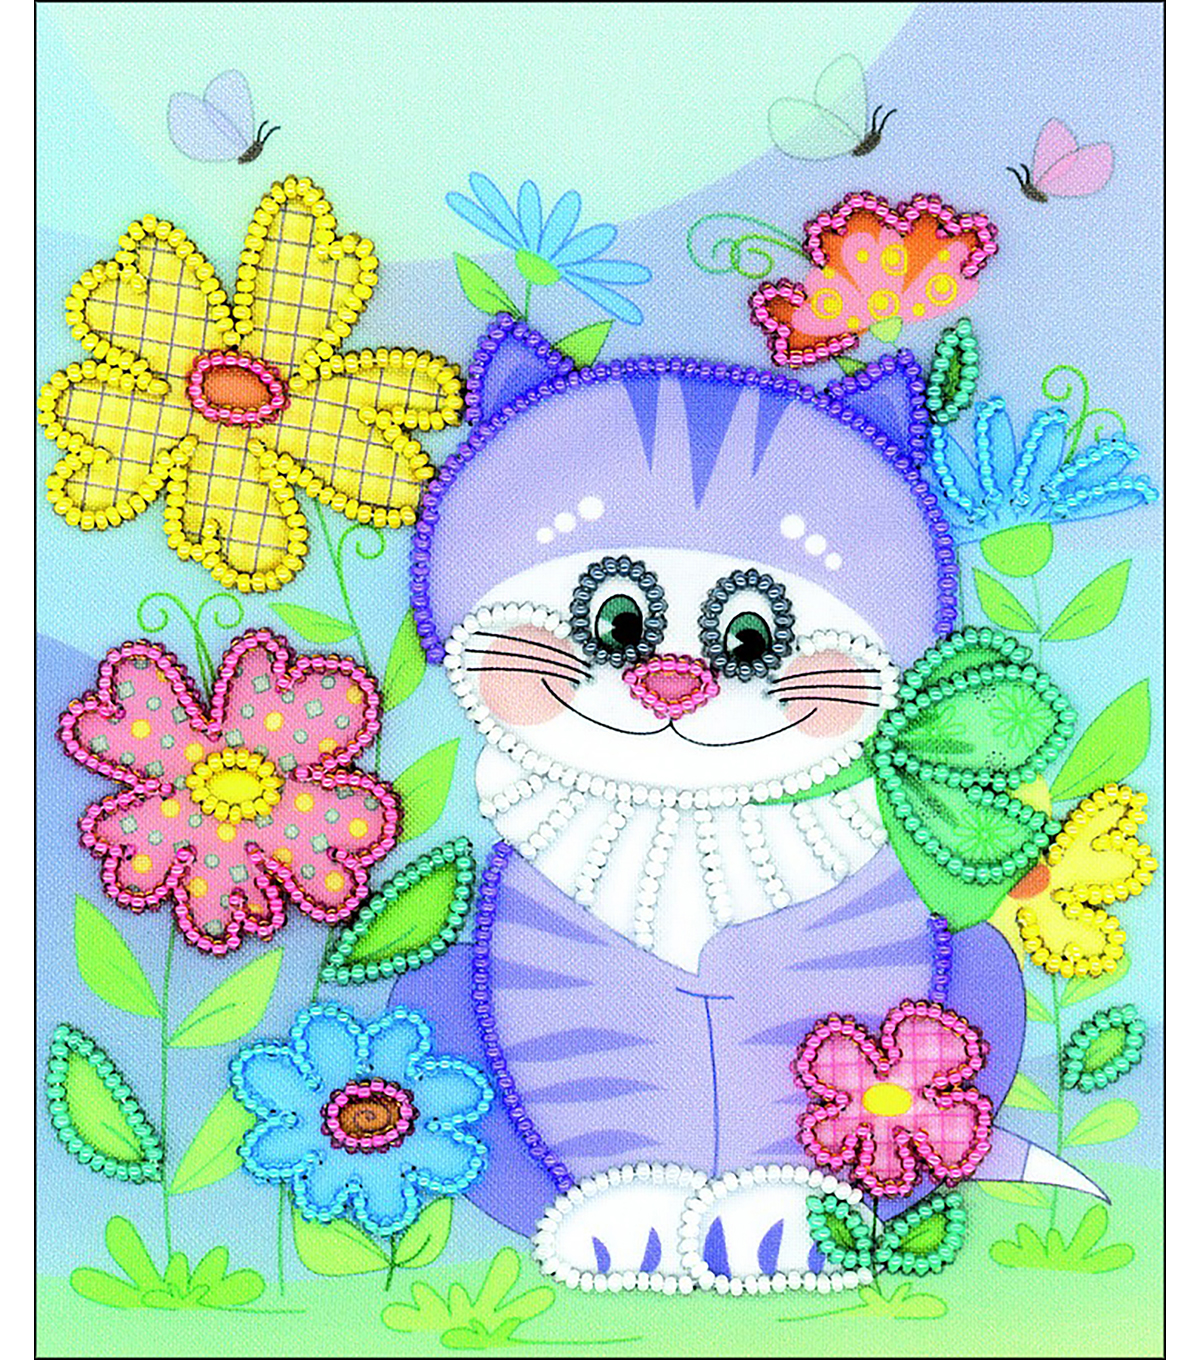 RIOLIS Create it Yourself 6\u0027\u0027x7\u0027\u0027 Beaded Embroidery Kit-Kitten